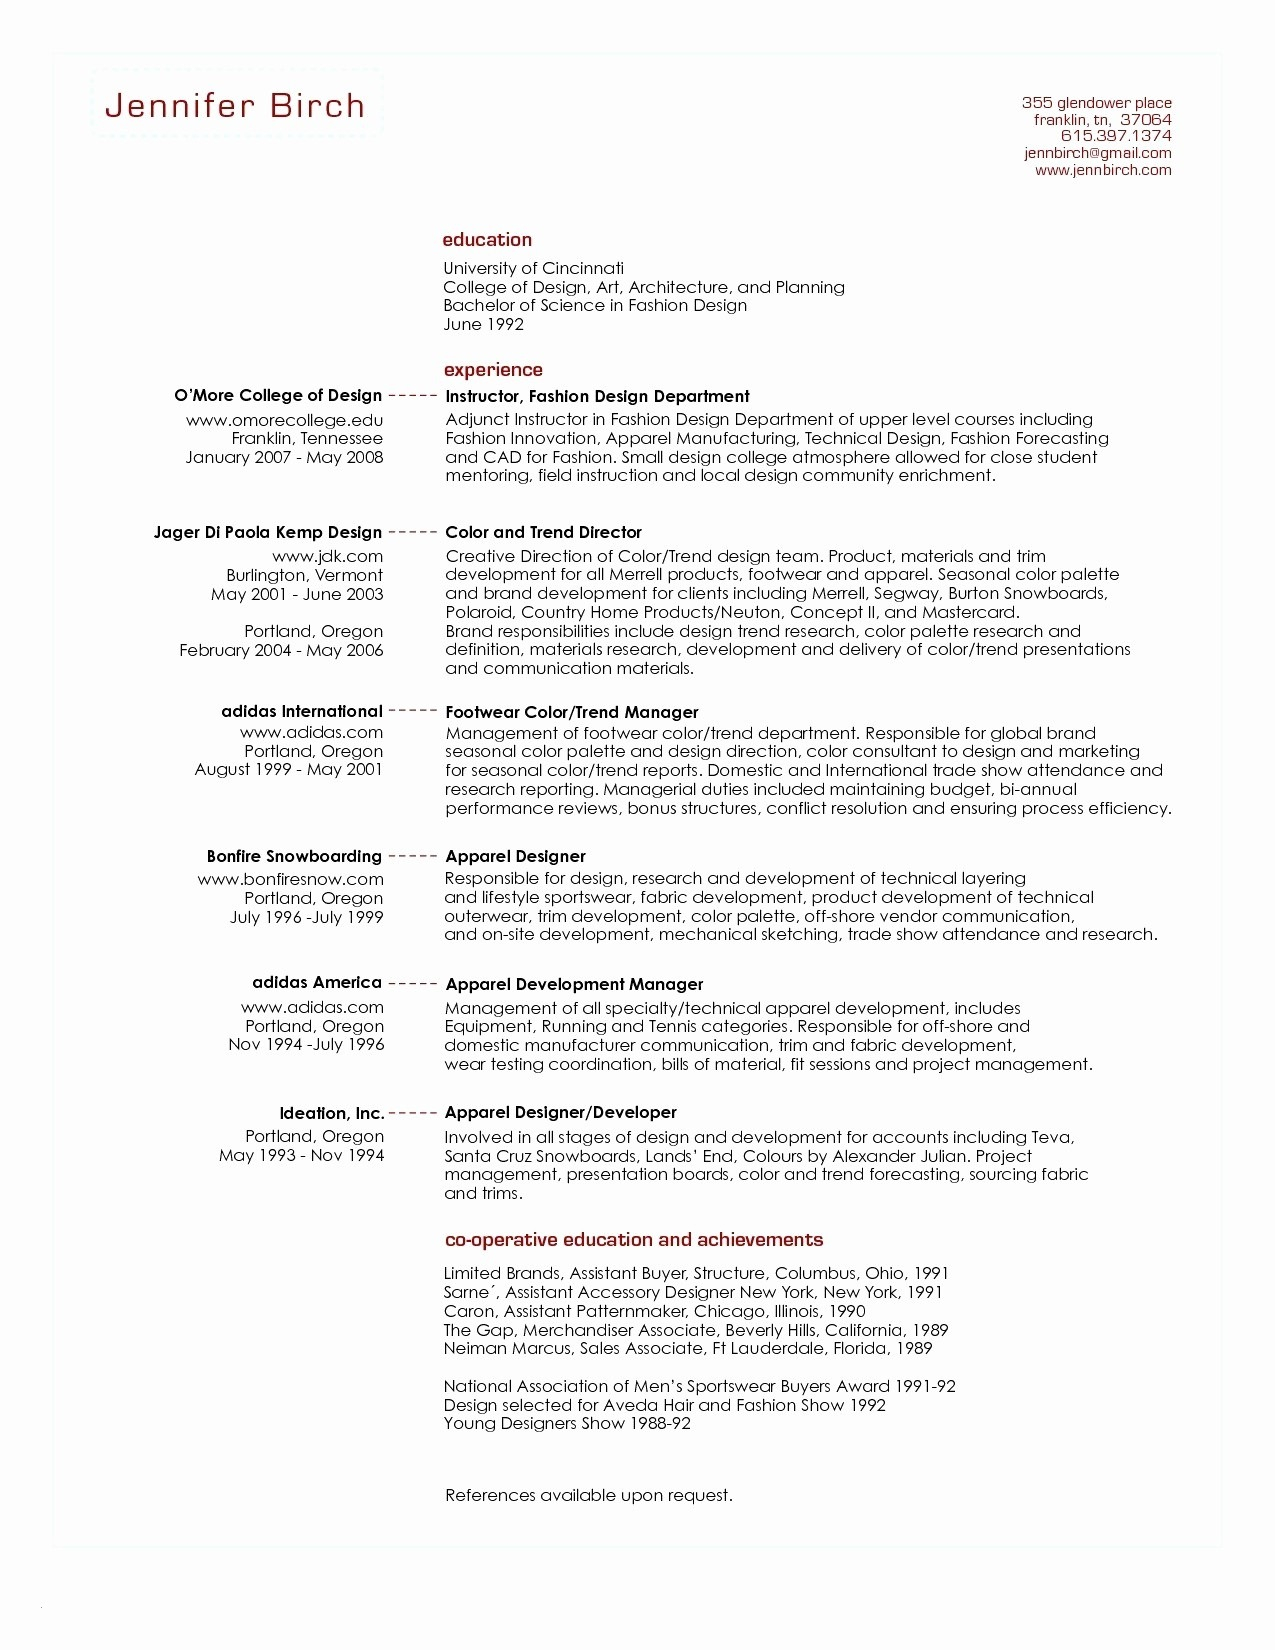 uiuc resume template Collection-Personal assistant Resume Sample New Elegant Resume Cv Executive Sample Luxury Resume Examples 0d Cv 14-e